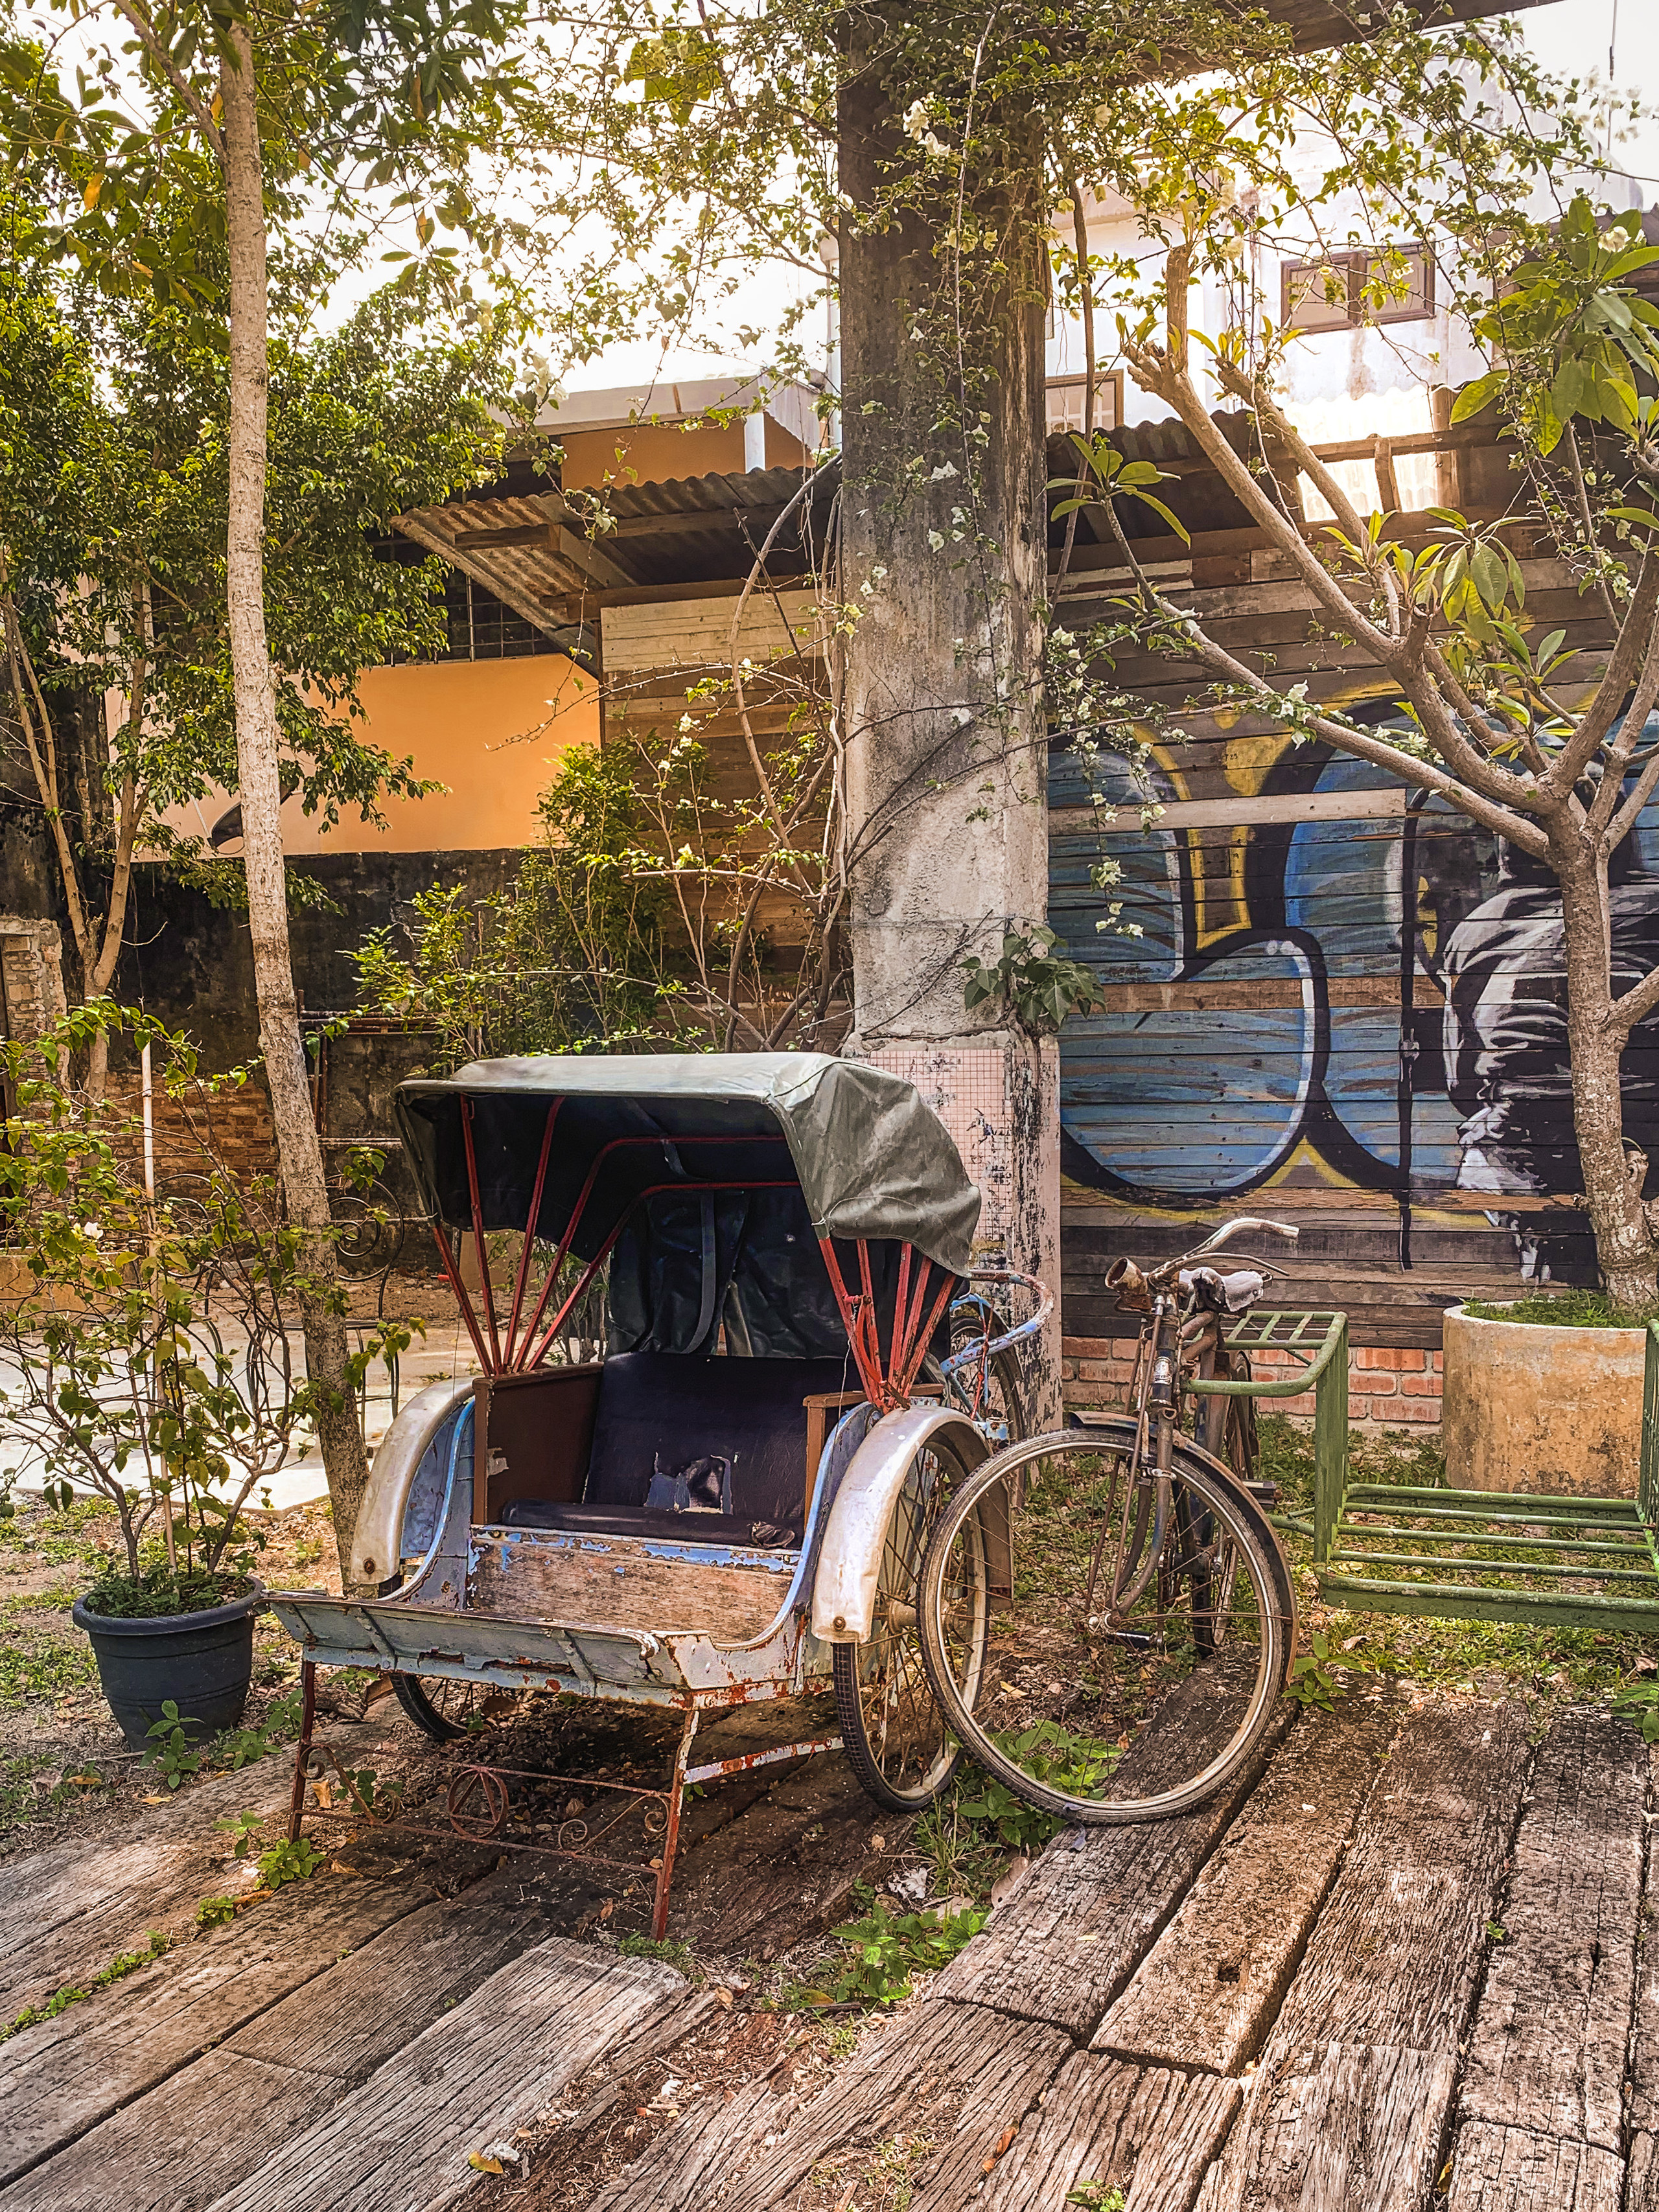 Antique trishaw and bicycle on timber planks against graffiti background, RollingBear Travels blog.